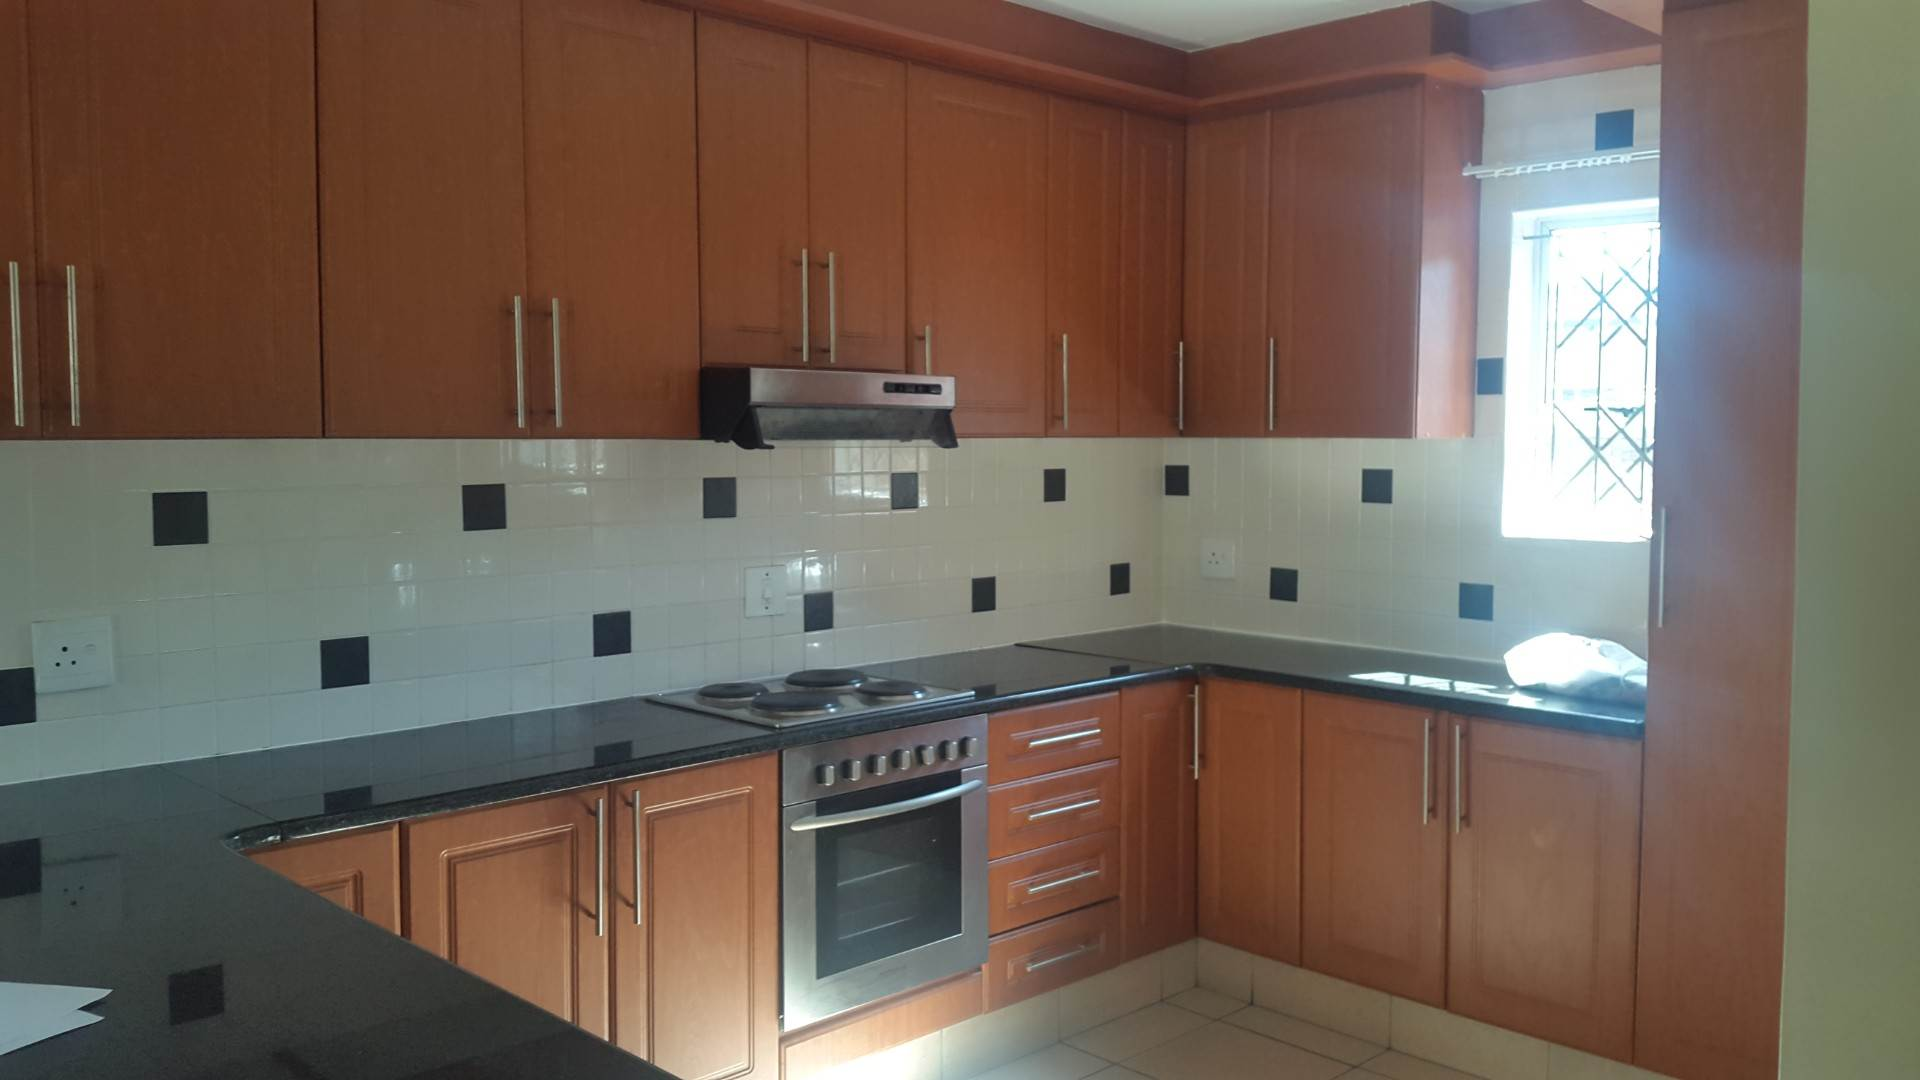 3 BedroomTownhouse To Rent In Arboretum